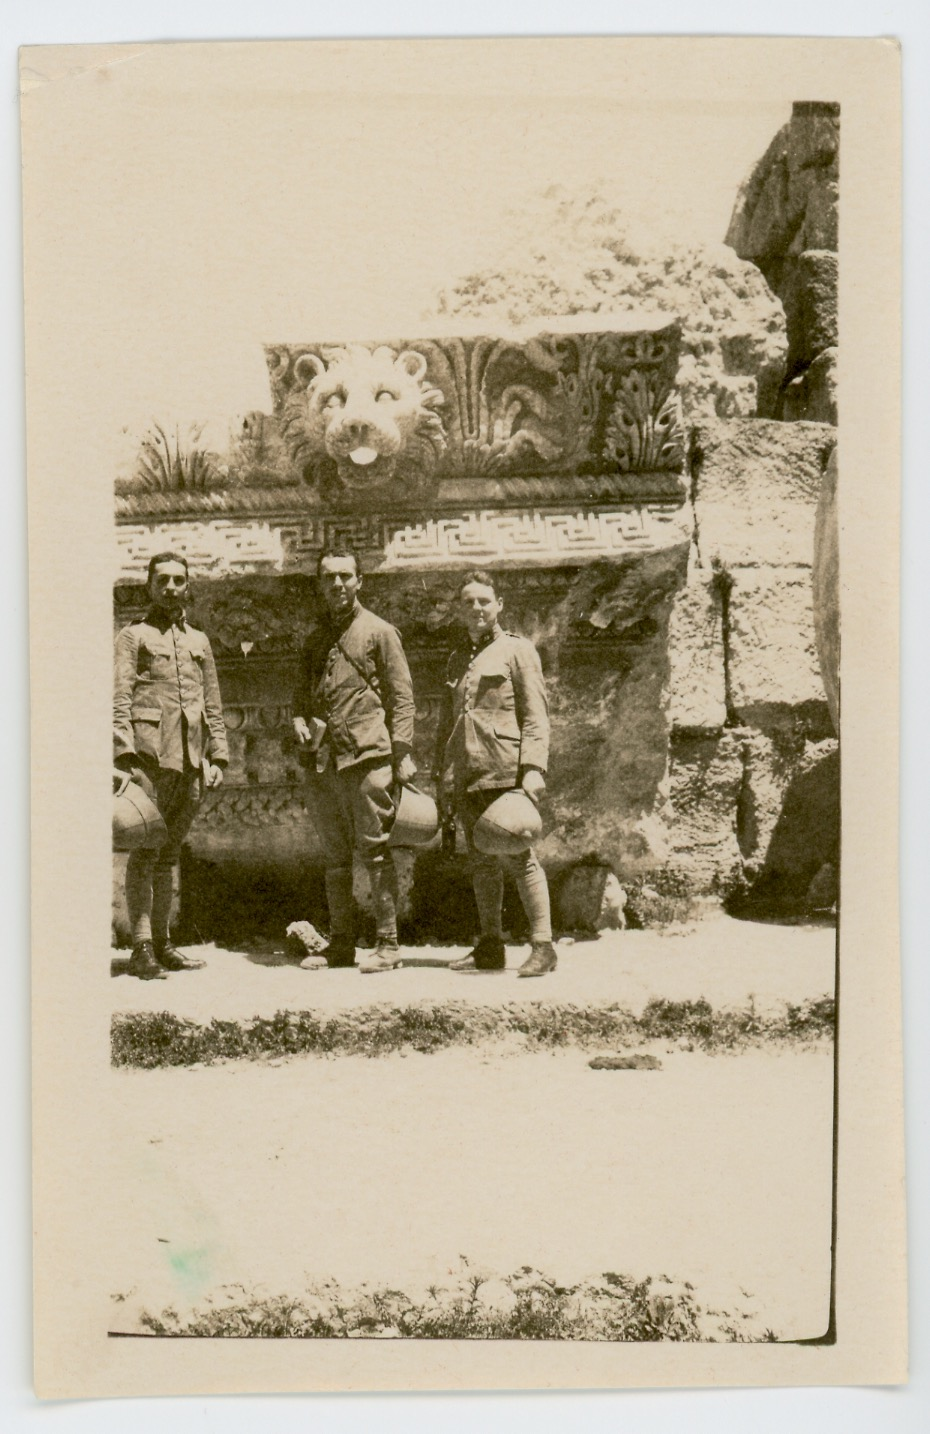 Snapshot - Photo papier originale - Infanterie Territoriale - Uniforme - France - Snapshot - Famille - Expédition - Indochine